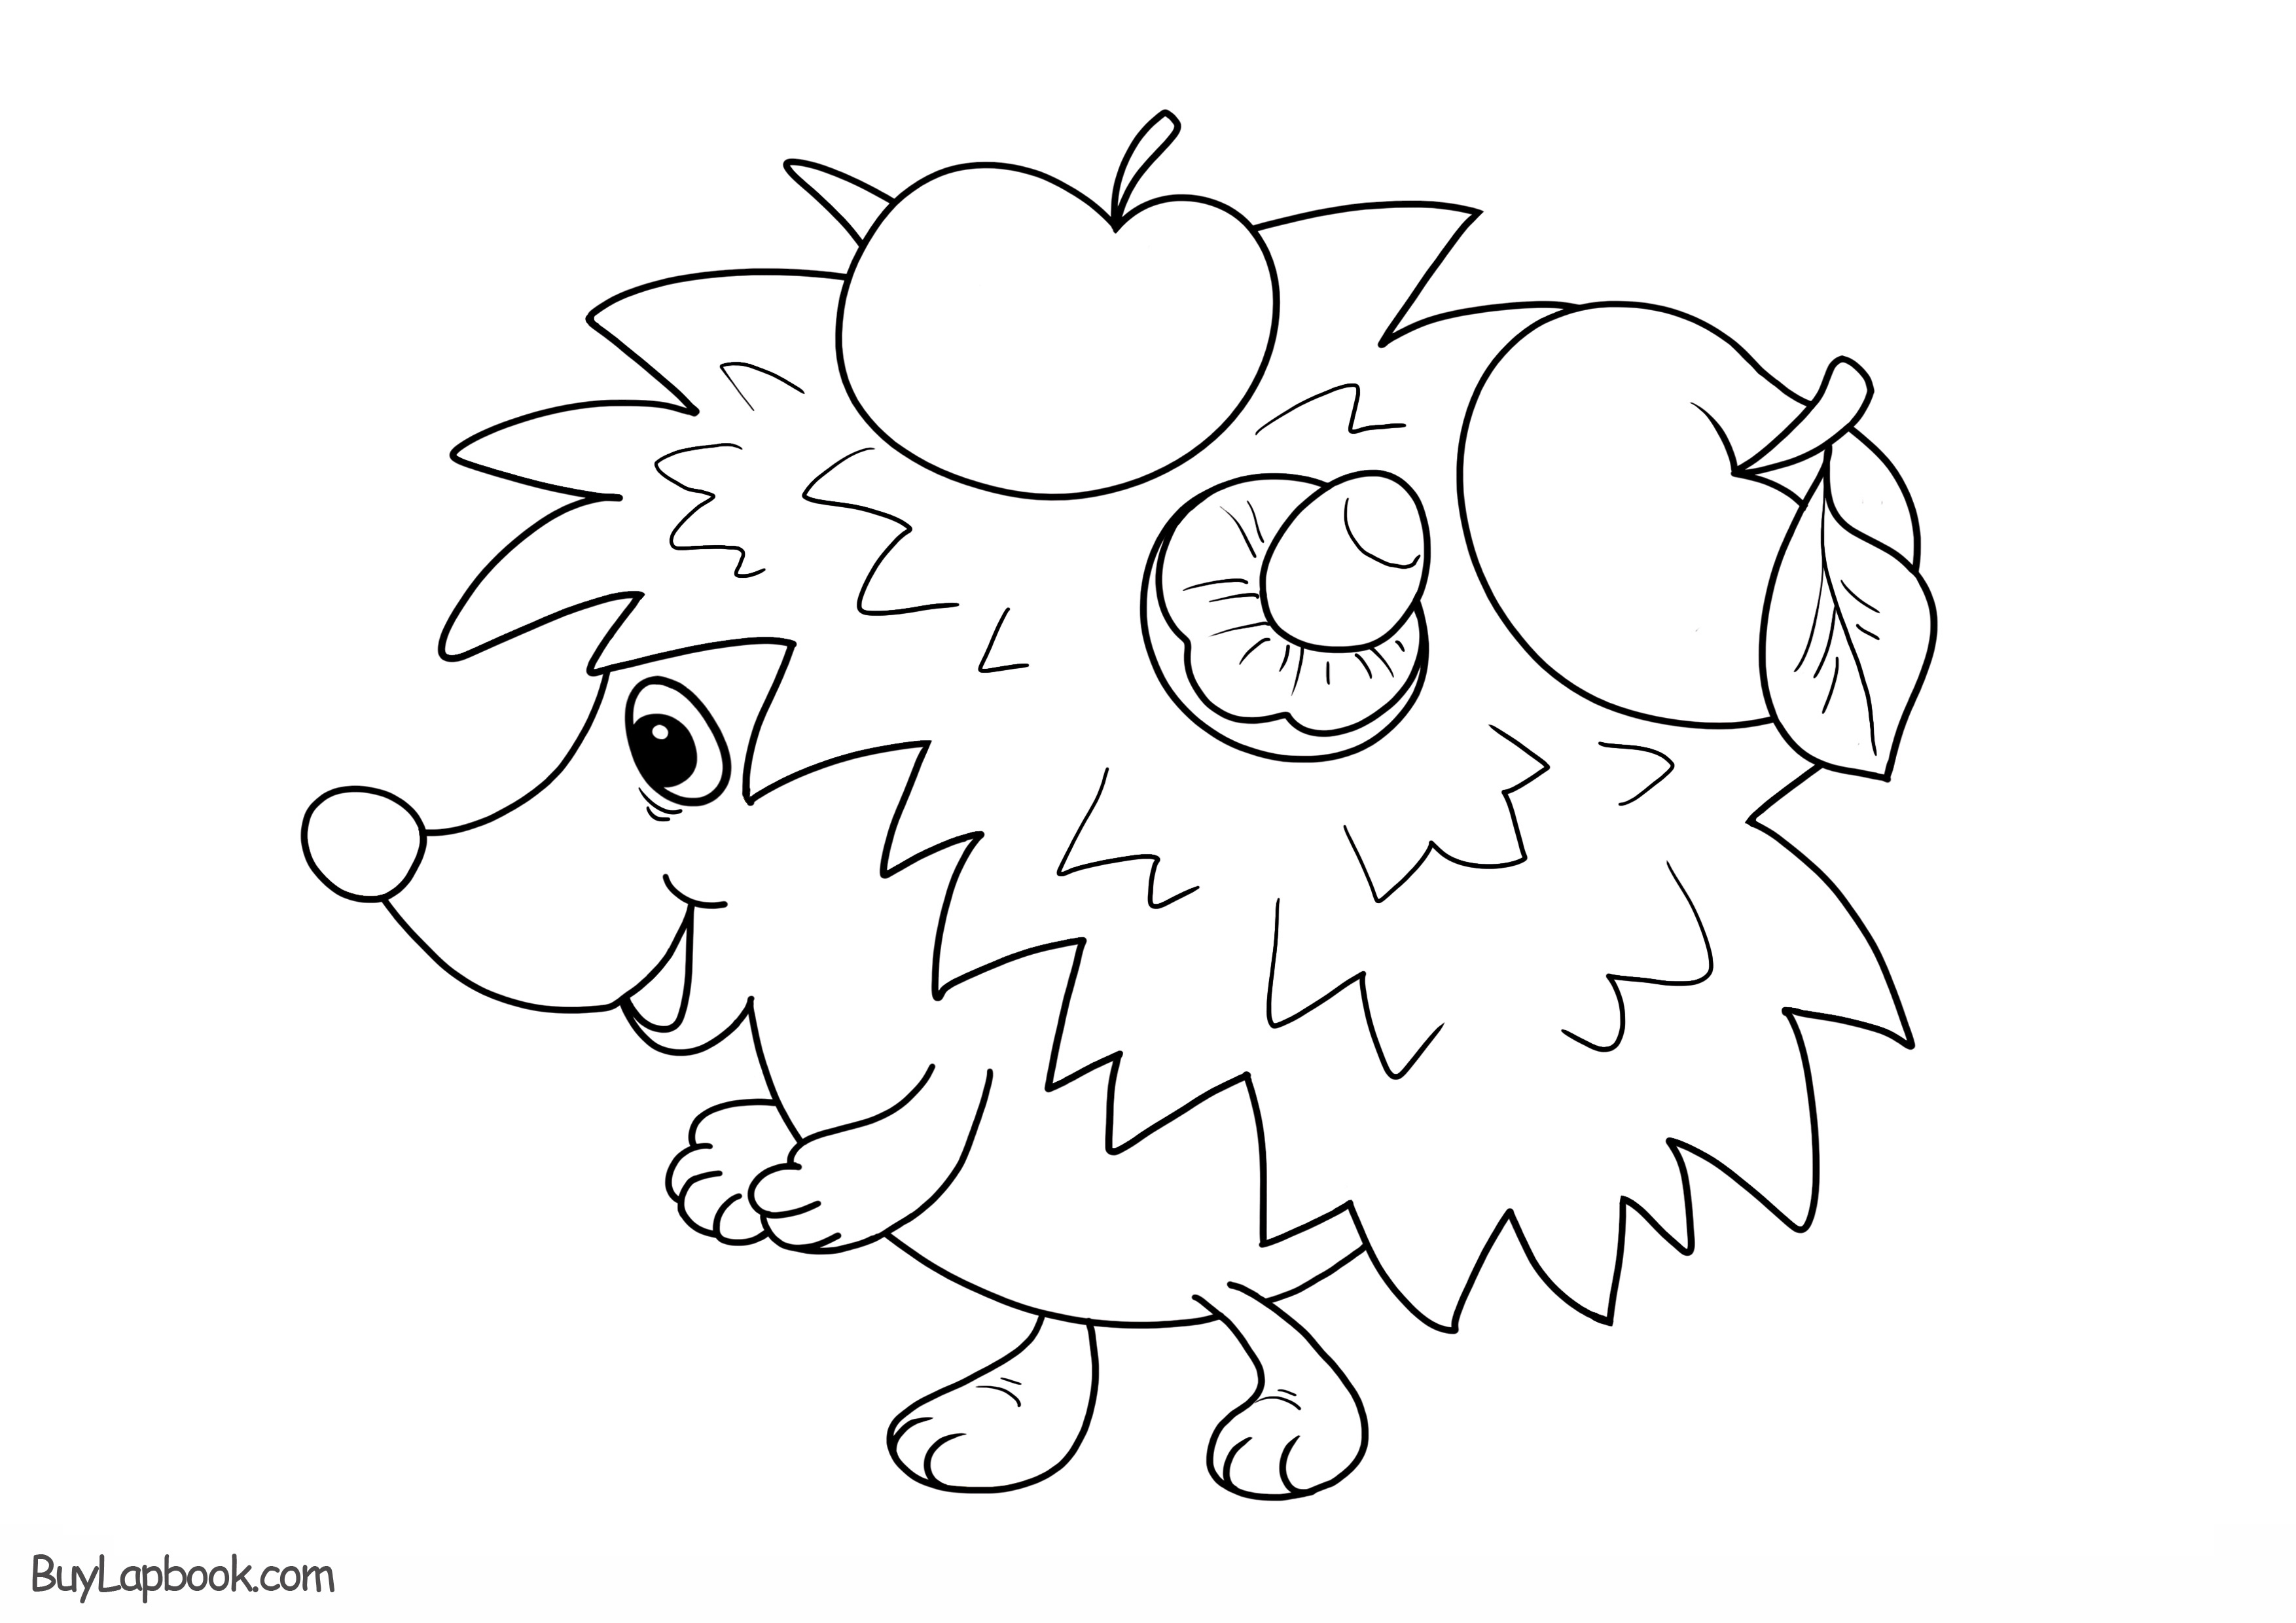 hedgehog colouring sheet hedgehogs free printable coloring and activity page for colouring sheet hedgehog